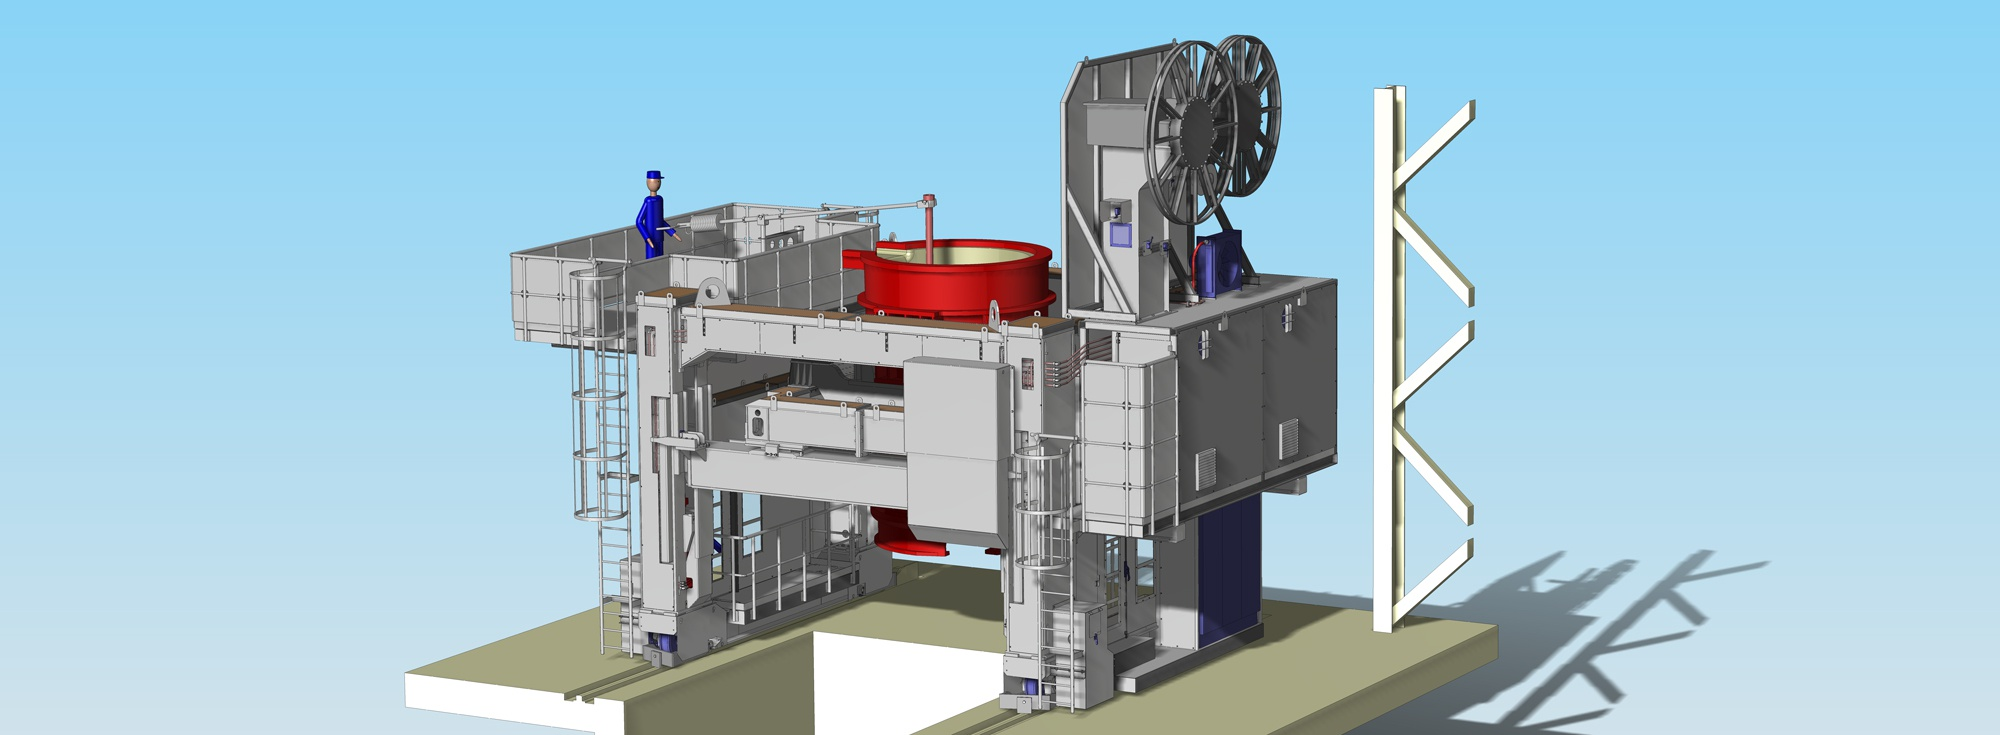 Ead engineering and design gmbh mechanical engineering for Mechanical product design companies